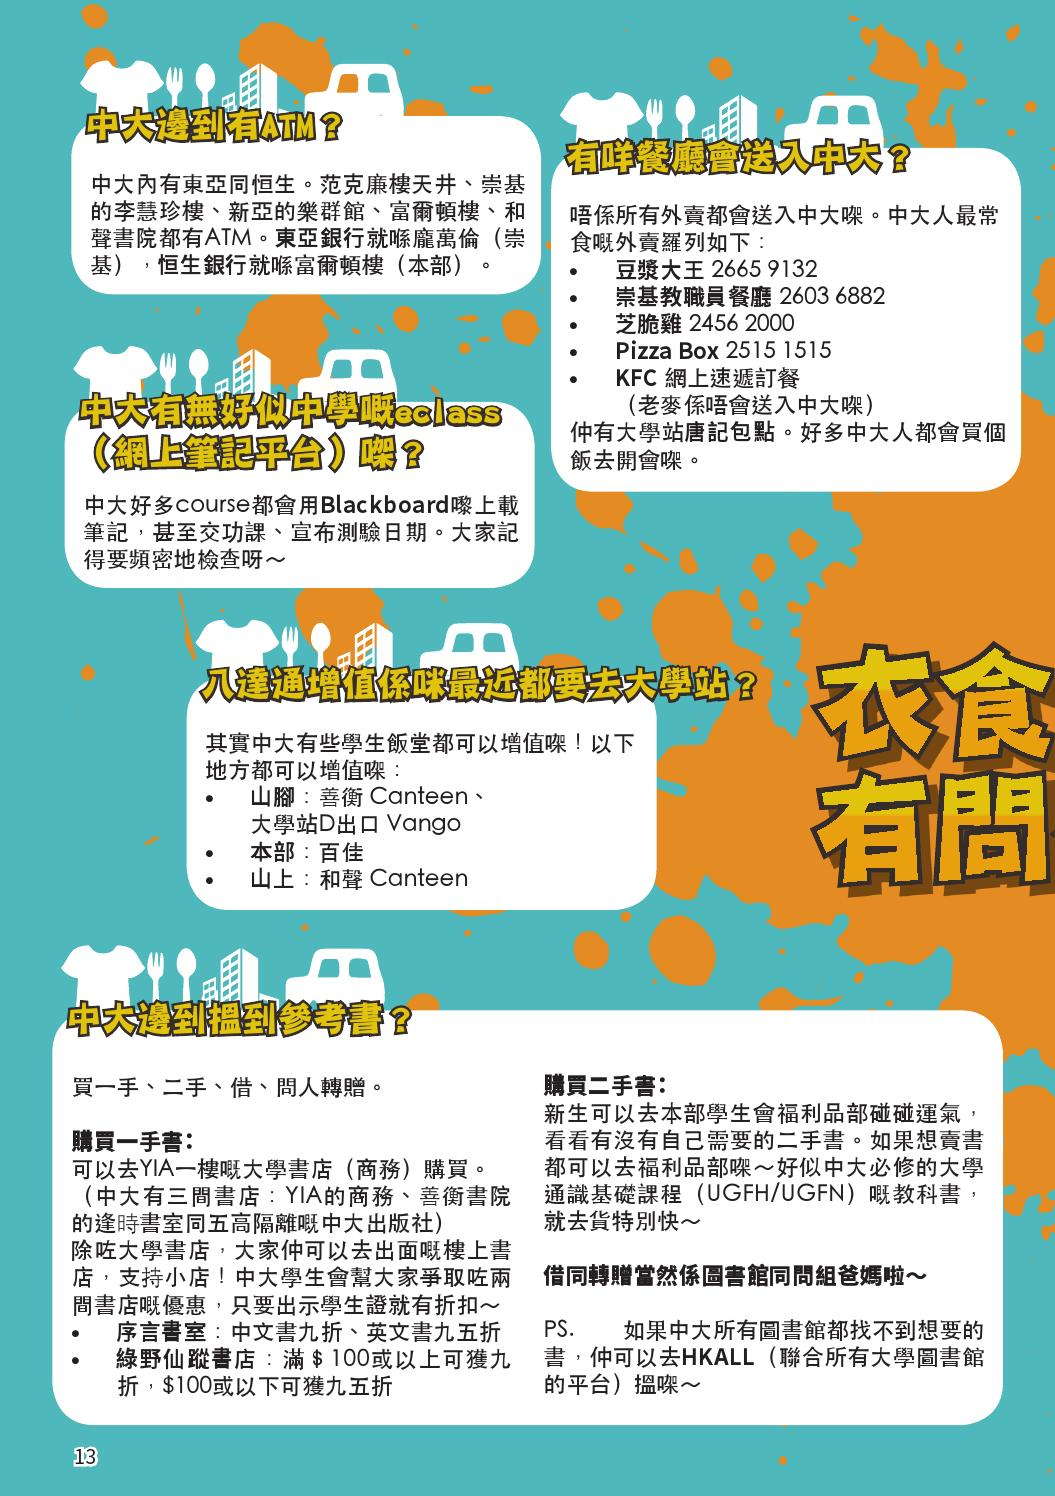 Cuhk first minute 2015 by 中大學生會 - Issuu